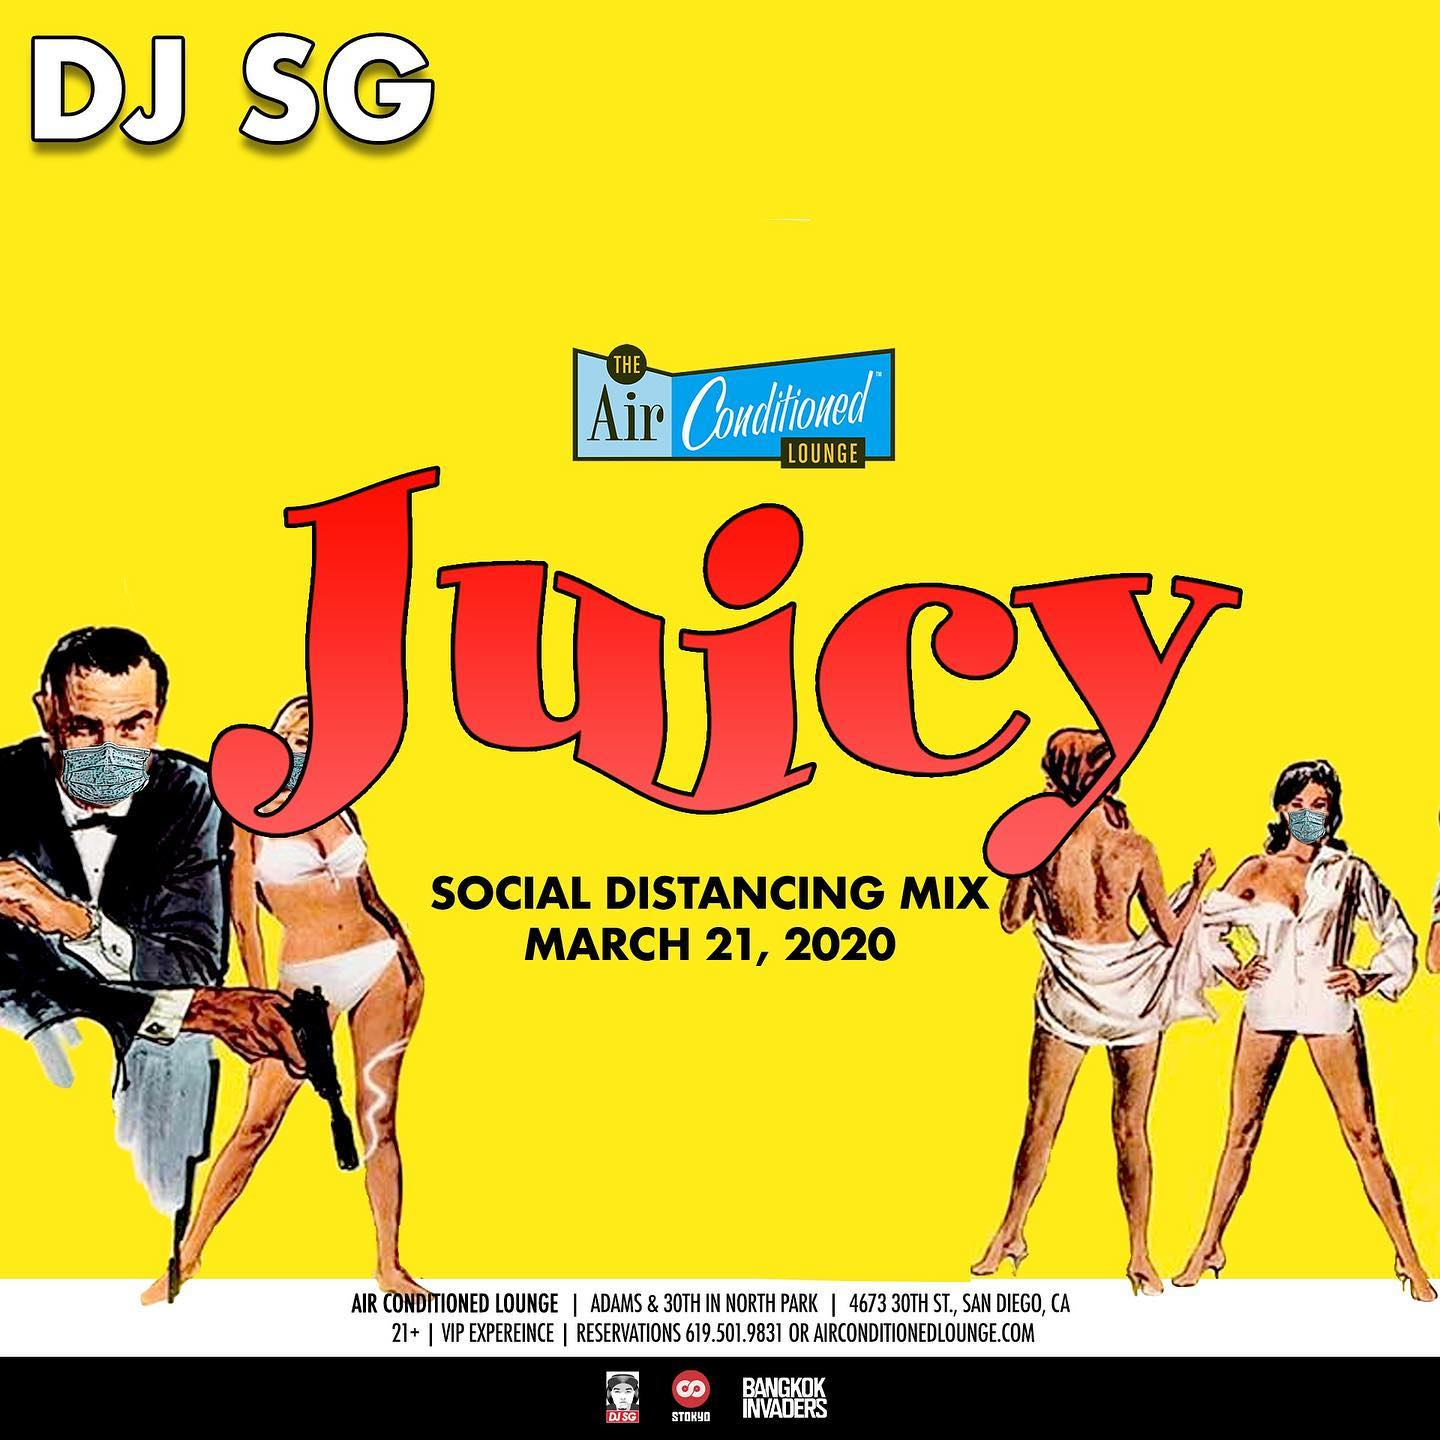 DJ SG Air Conditioned Lounge JUICY Social Distancing Mix 3/21/2020